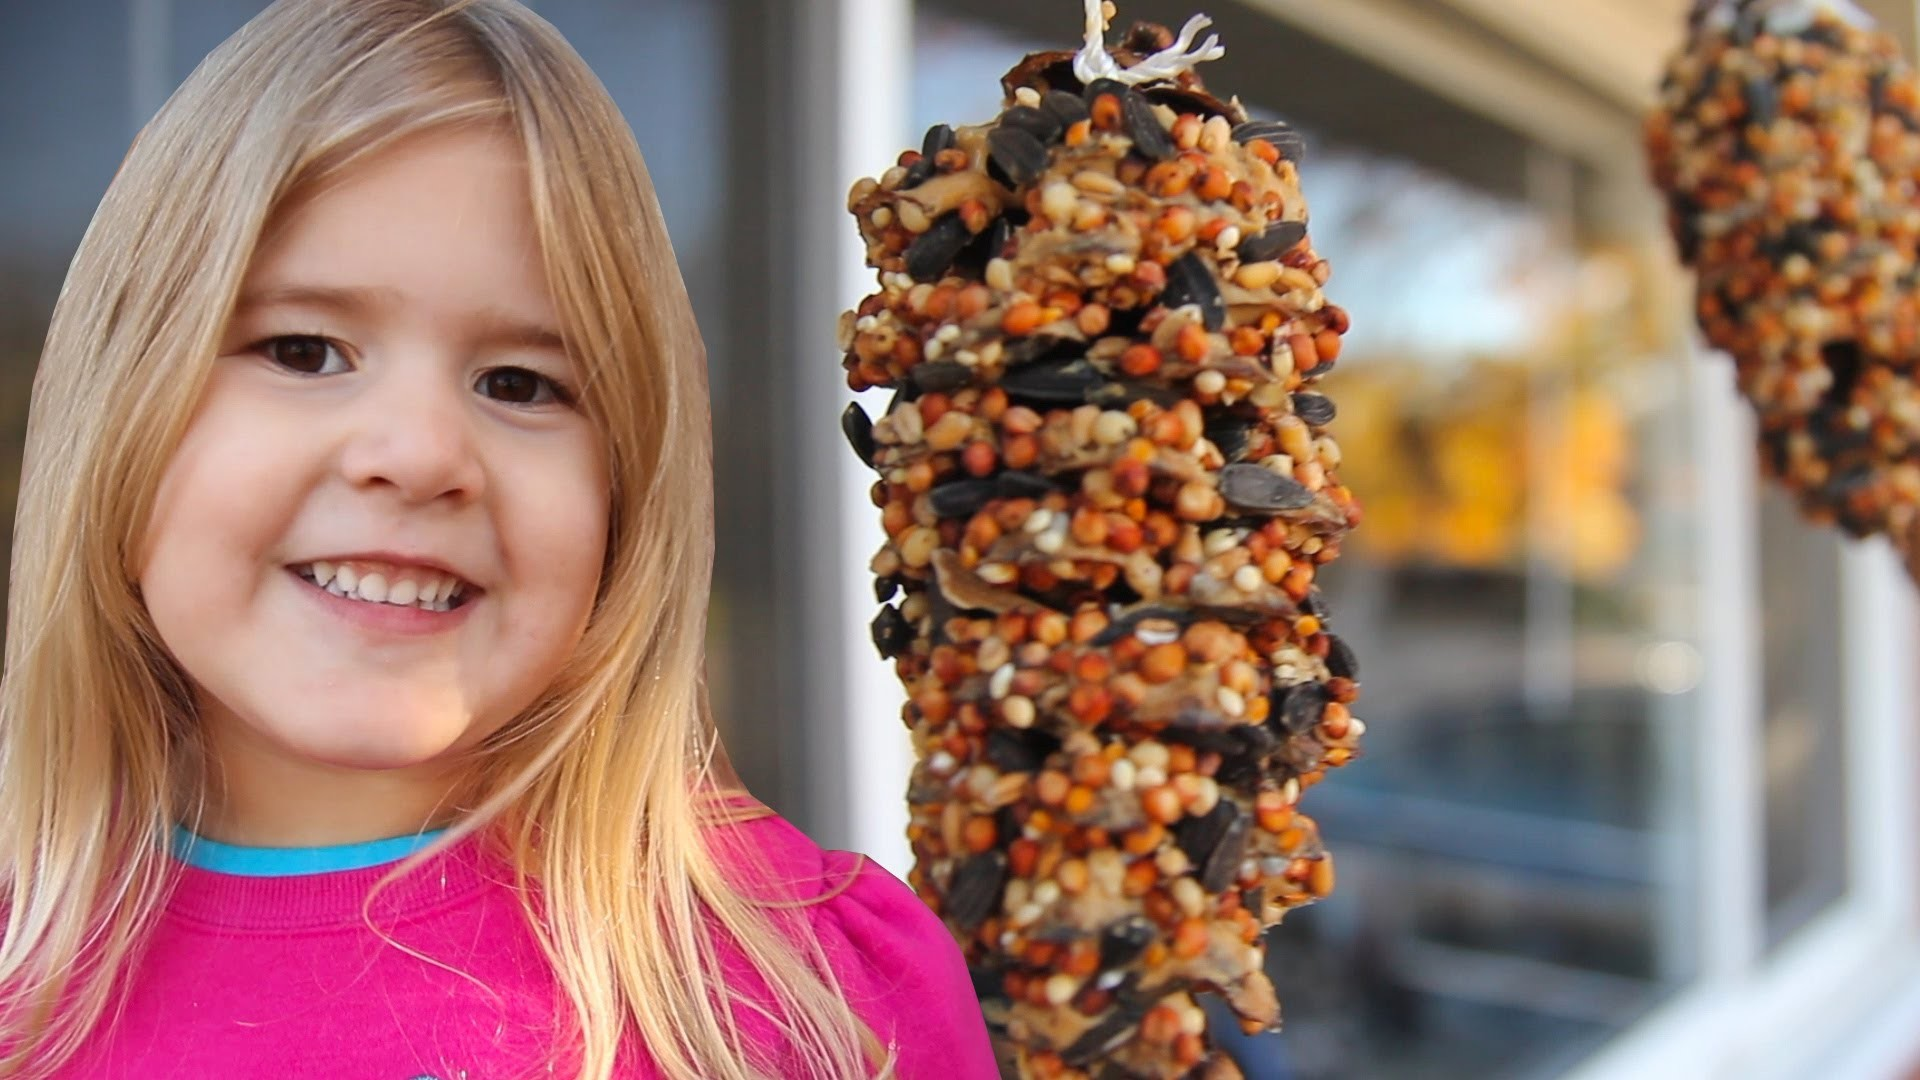 How To Make a Pine Cone Bird Feeder [Crafts for Kids #5]